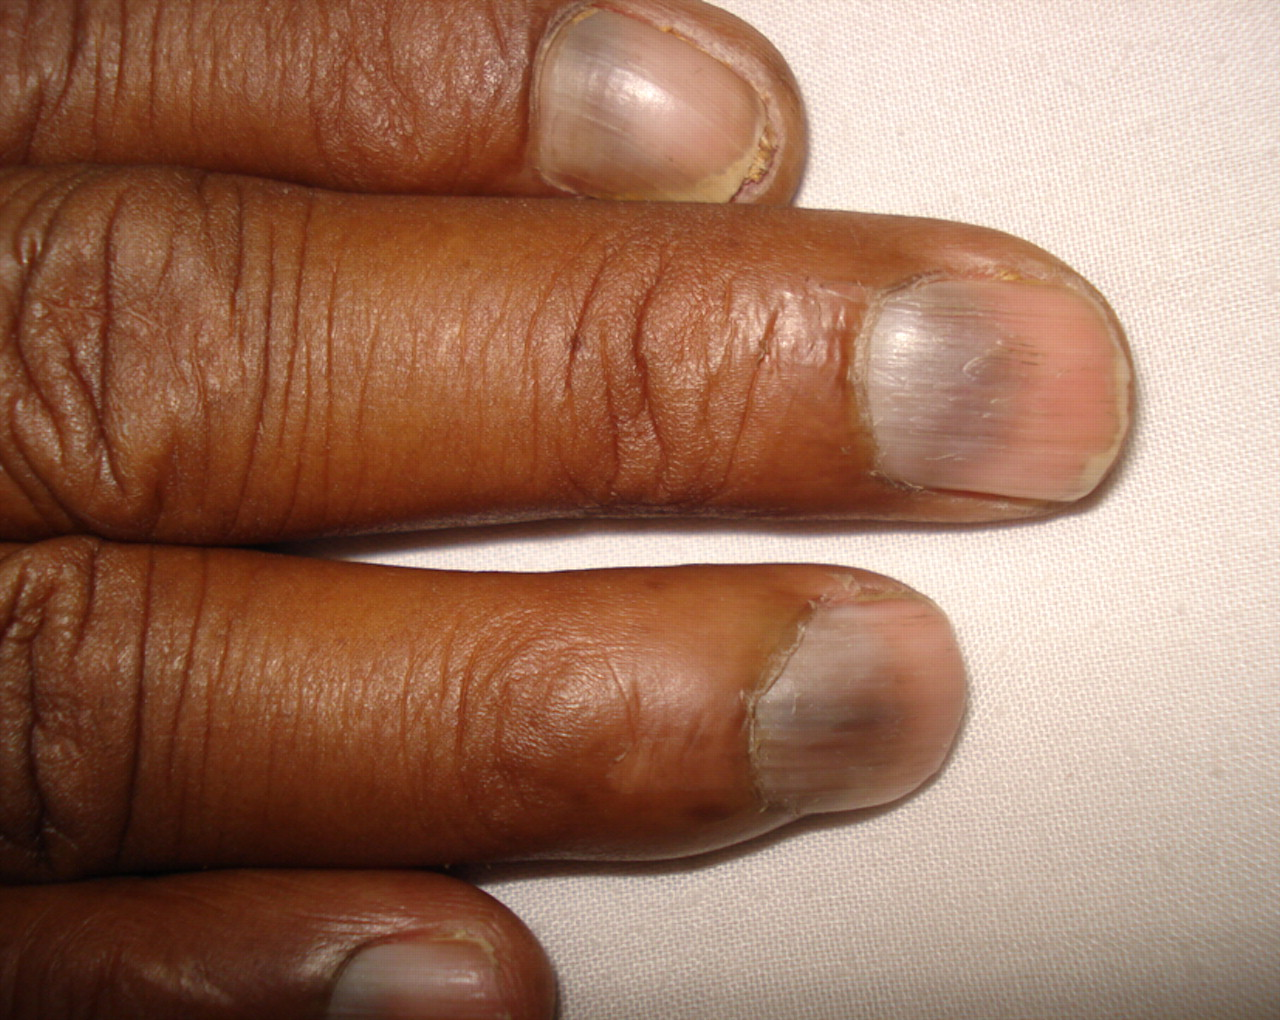 Nail changes in a patient with leukaemia   The BMJ